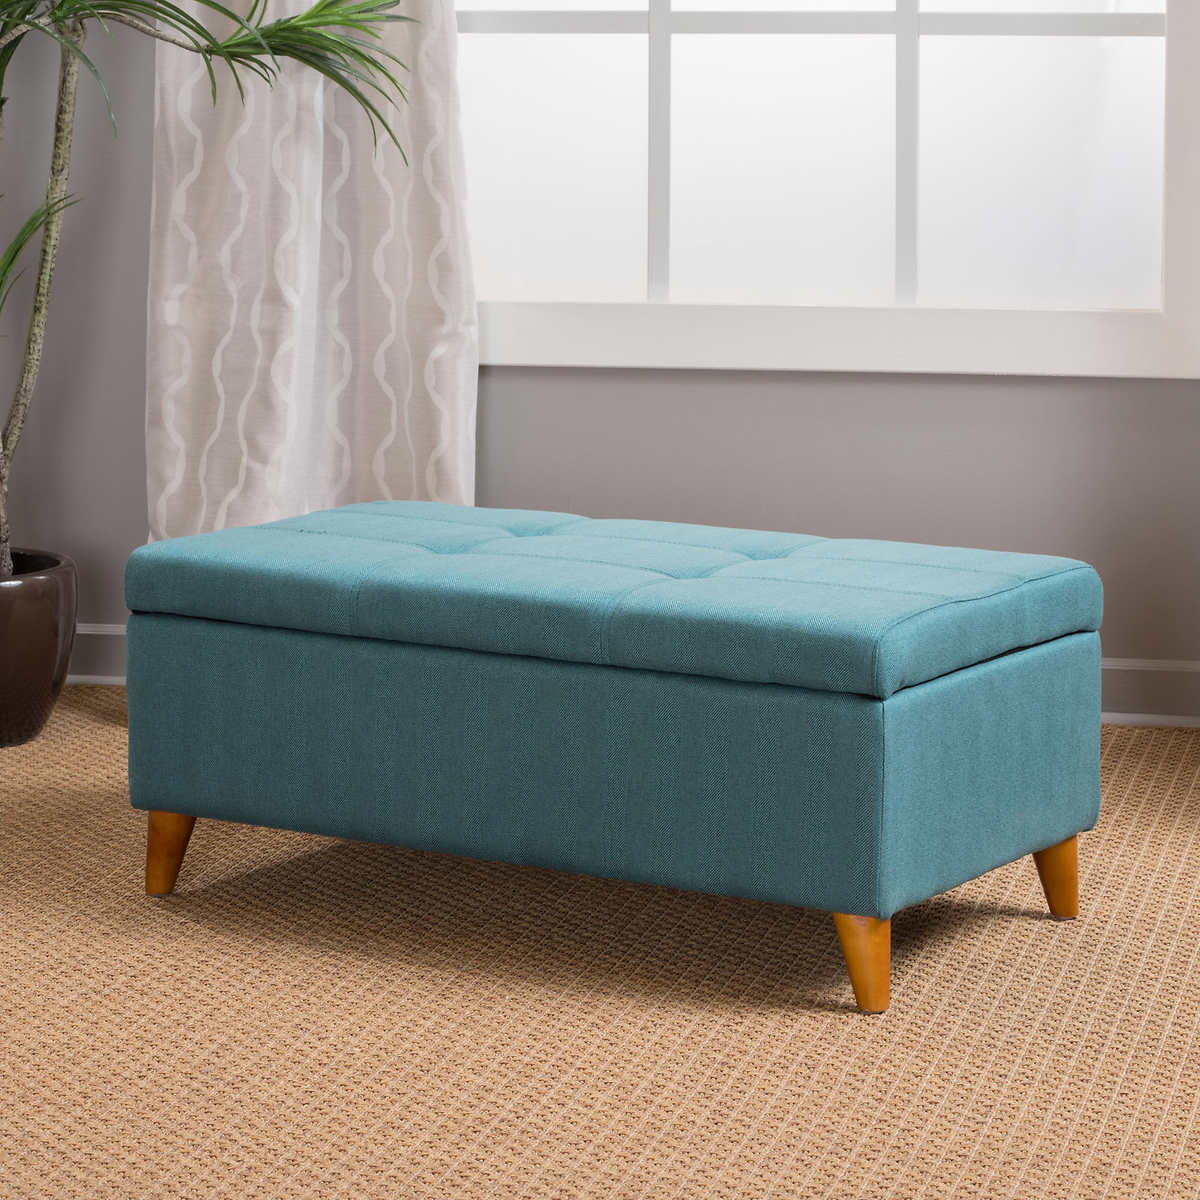 ottomans  benches  costco - maddox storage bench blue